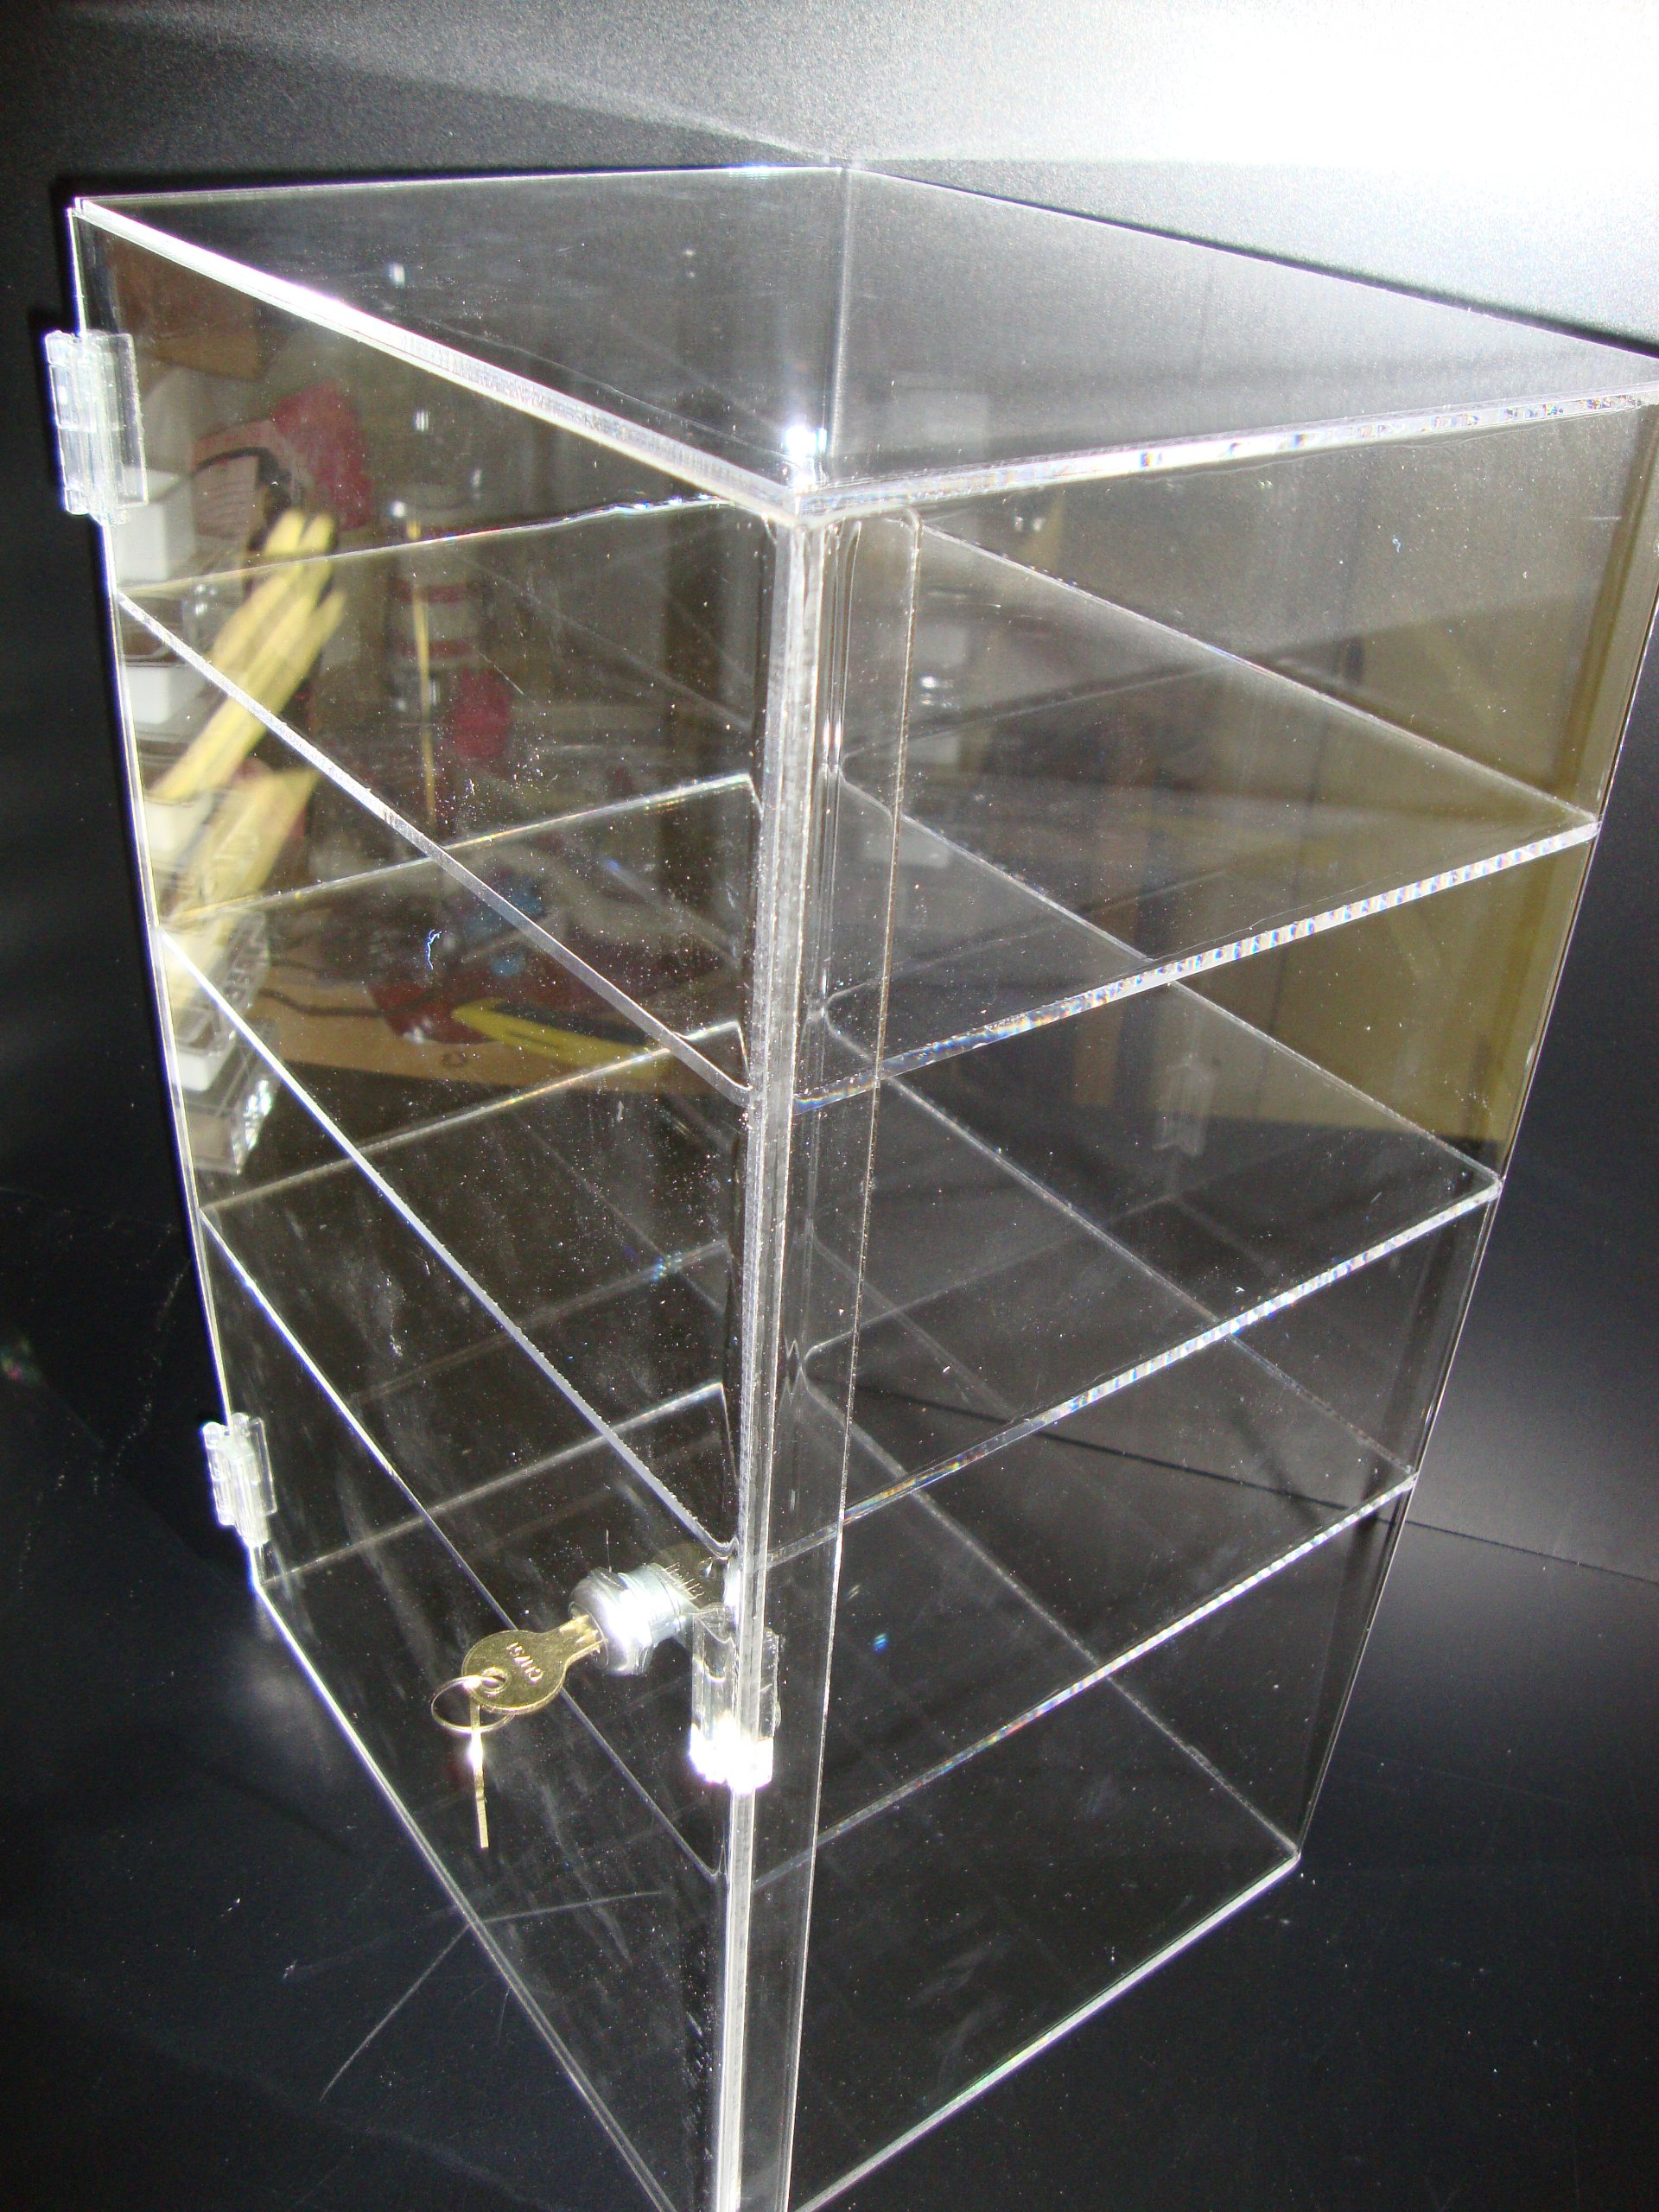 Marketing Holders Display Acrylic Lucite Showcase Jewelry Pastry Bakery Counter Display W/door & Lock (12'' x 9 1/2'' x 19''H)